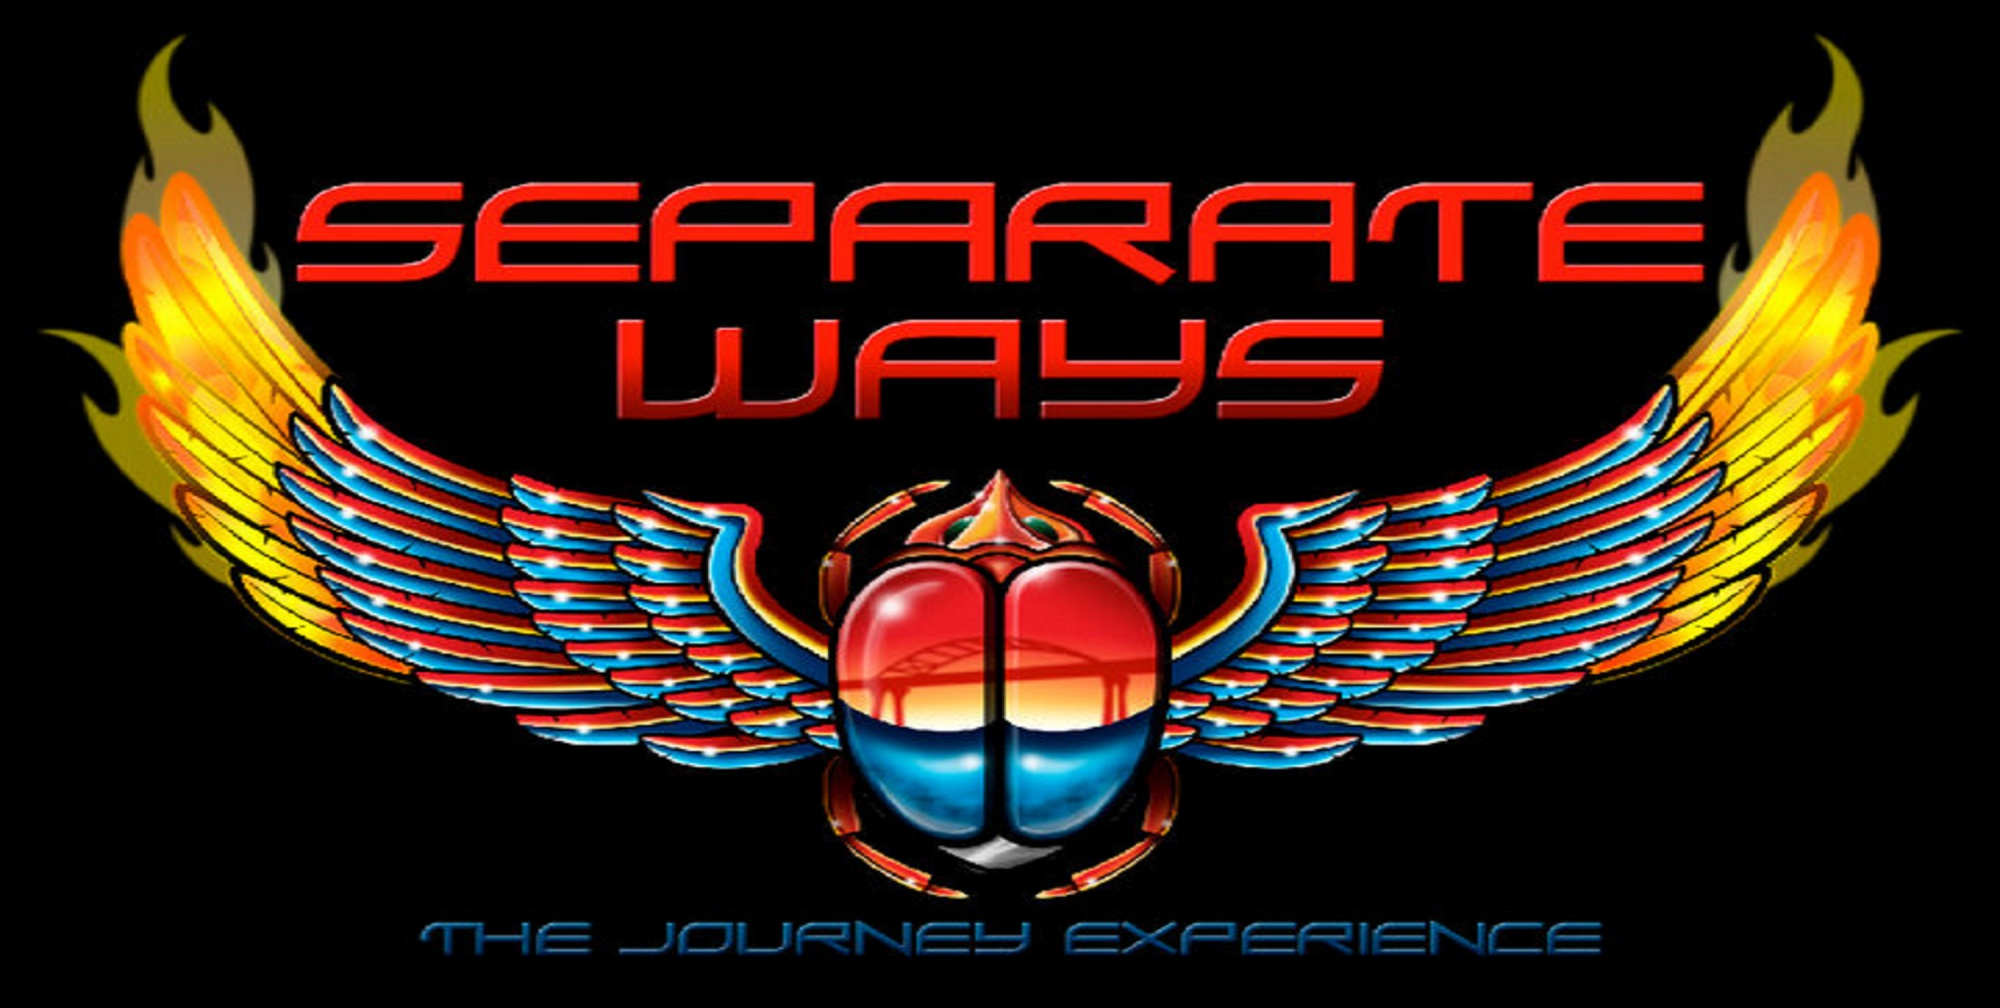 Journey Band Logo Png wwwgalleryhipcom   The Hippest Pics 2000x1008